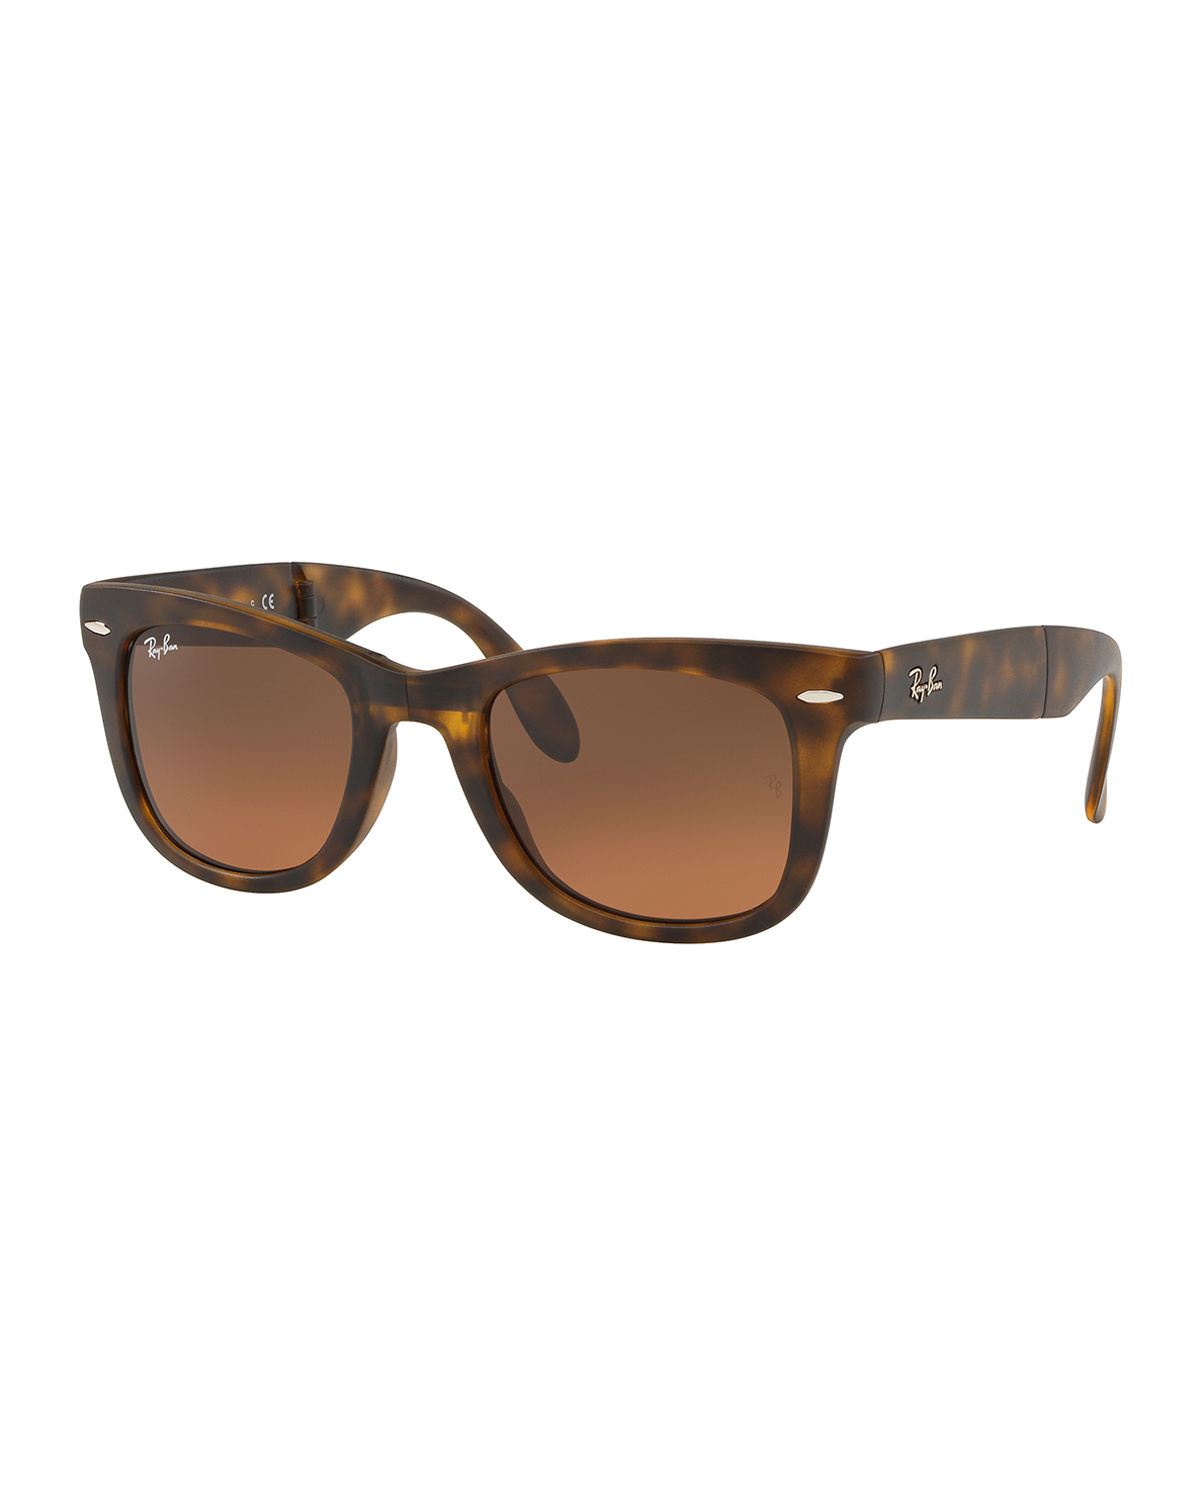 Ray Ban Sunglasses MEN'S WAYFARER FOLDING SUNGLASSES